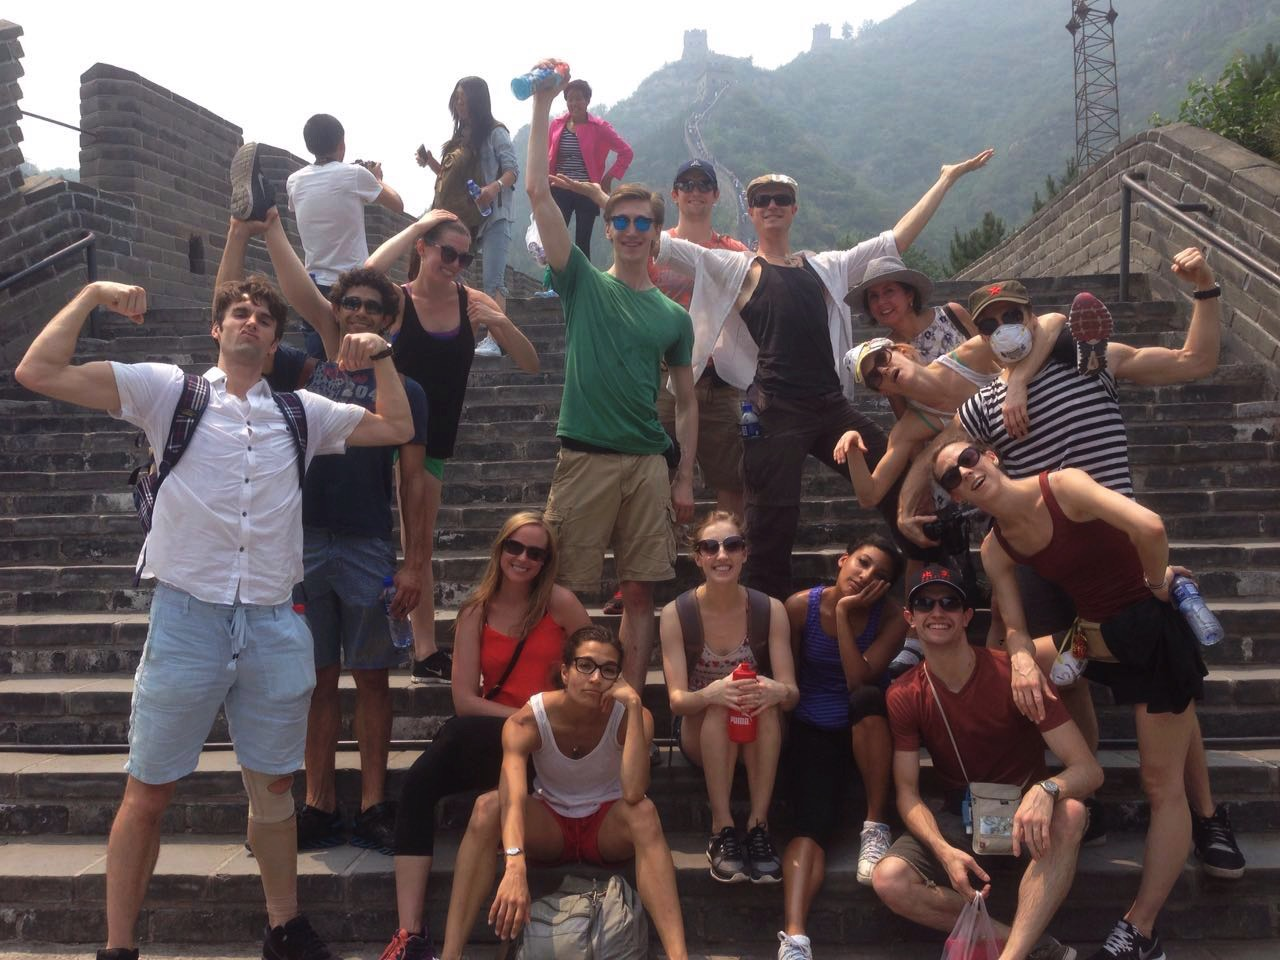 RICHARD - Group Makes it to the Top of The Great Wall